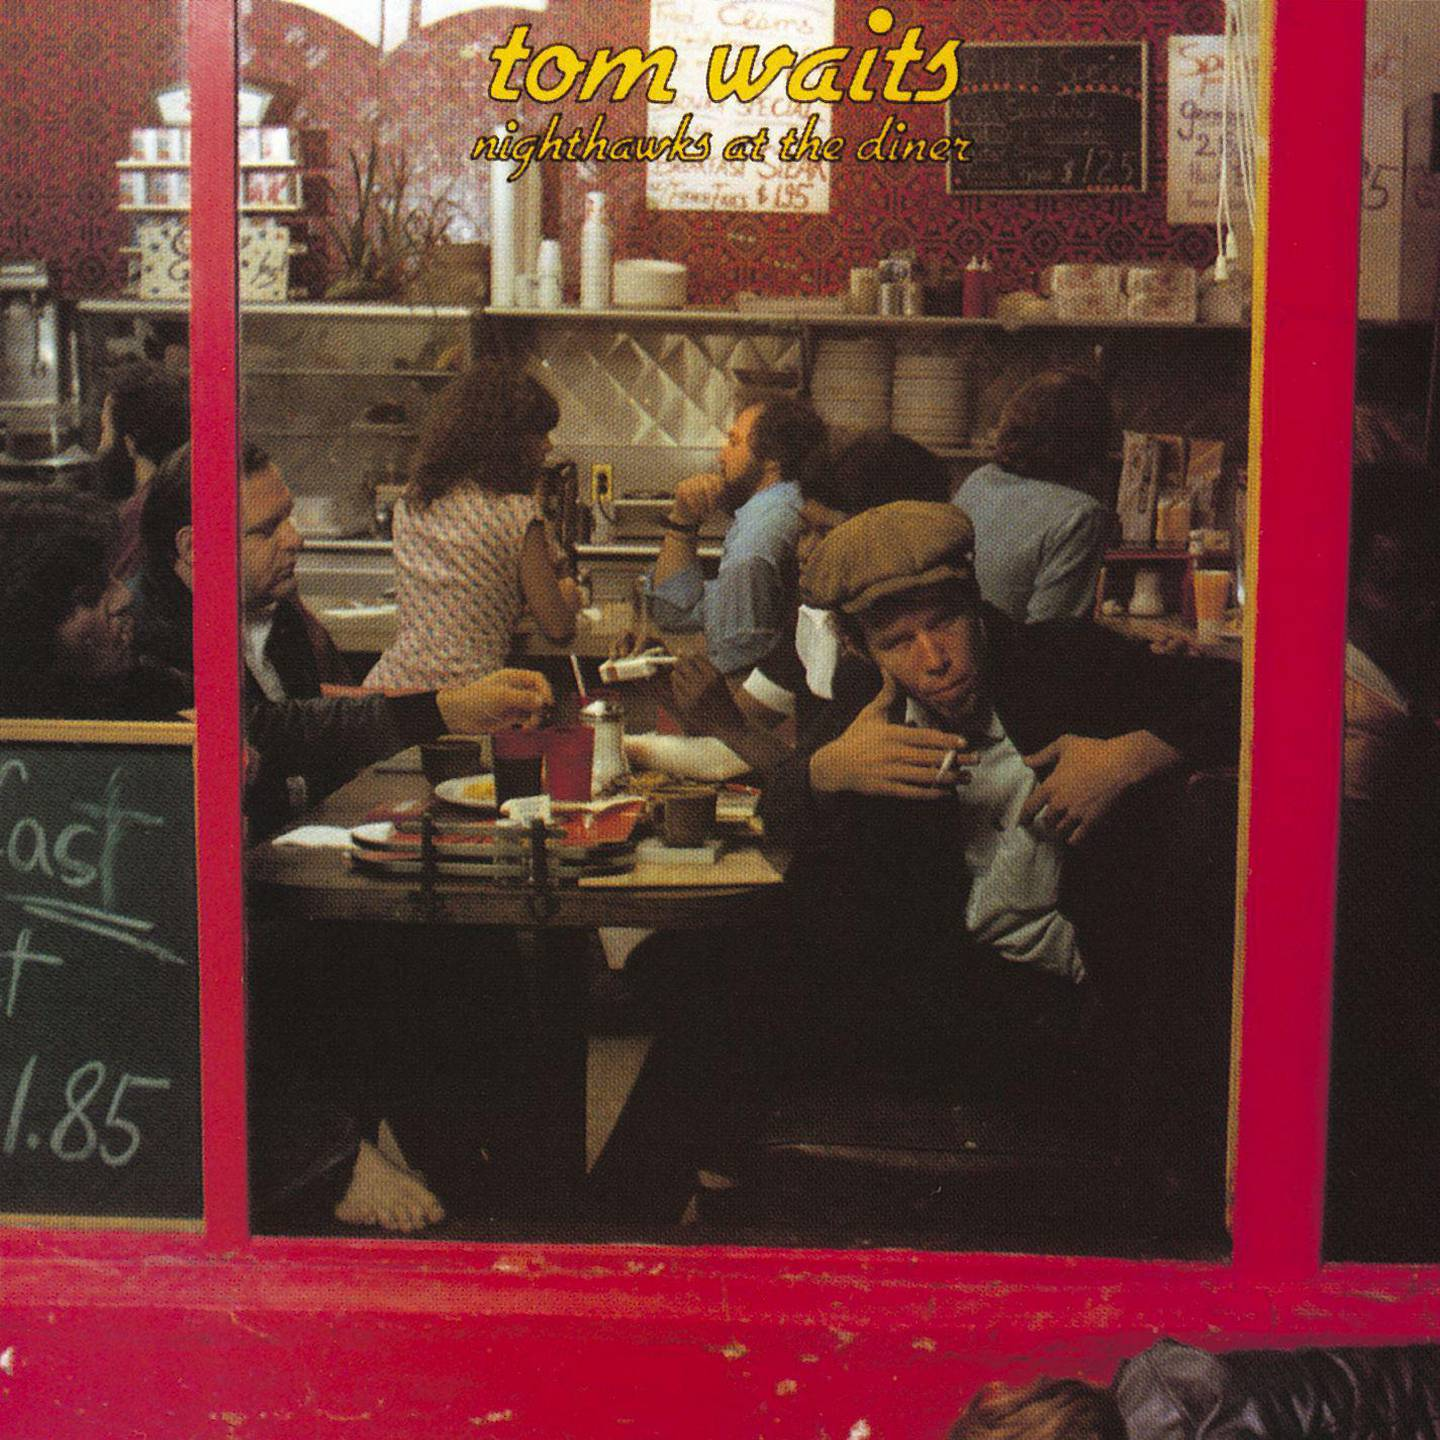 Nighthawks At The Diner by Tom Waits. Courtesy Rhino Entertainment